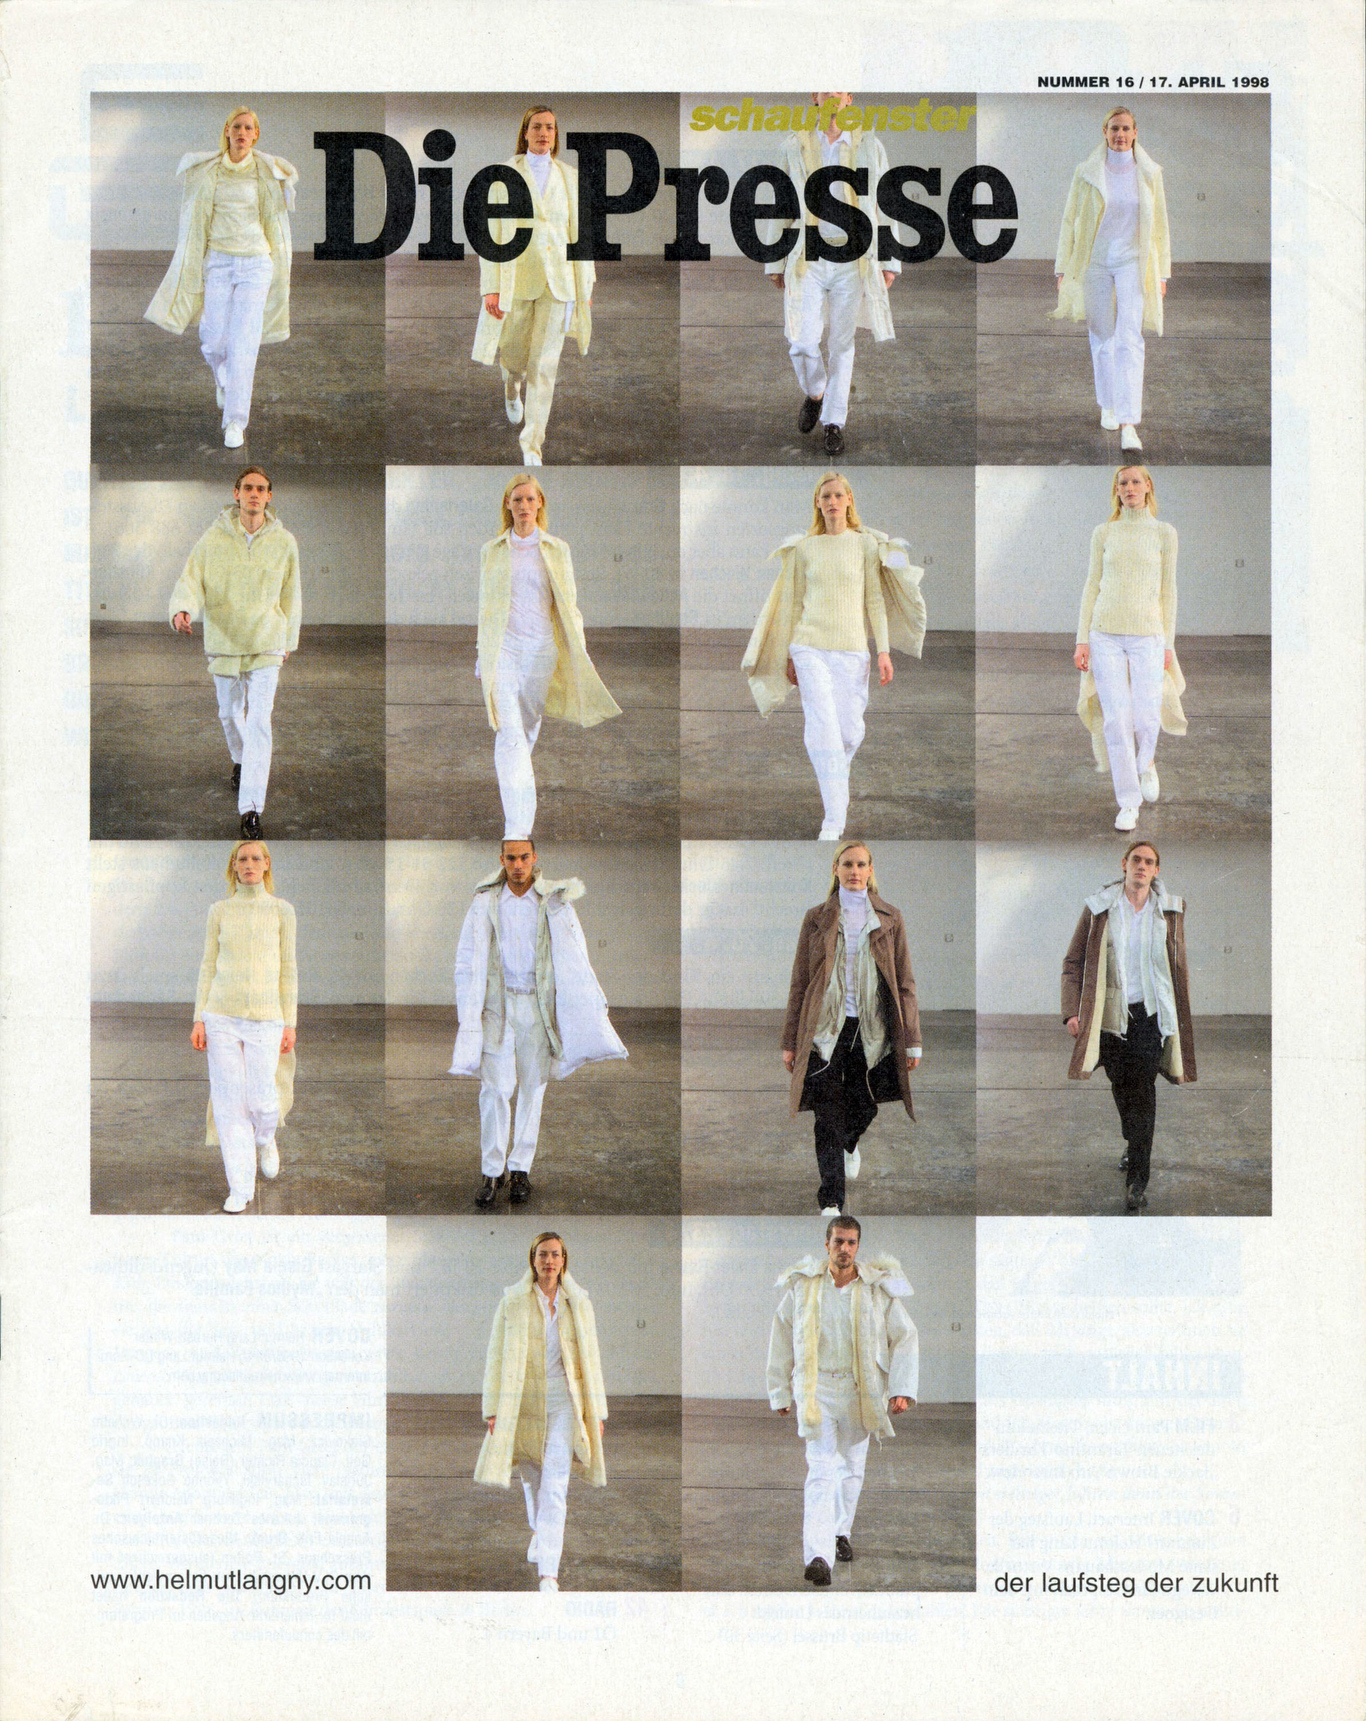 Cover of Die Presse weekend supplement